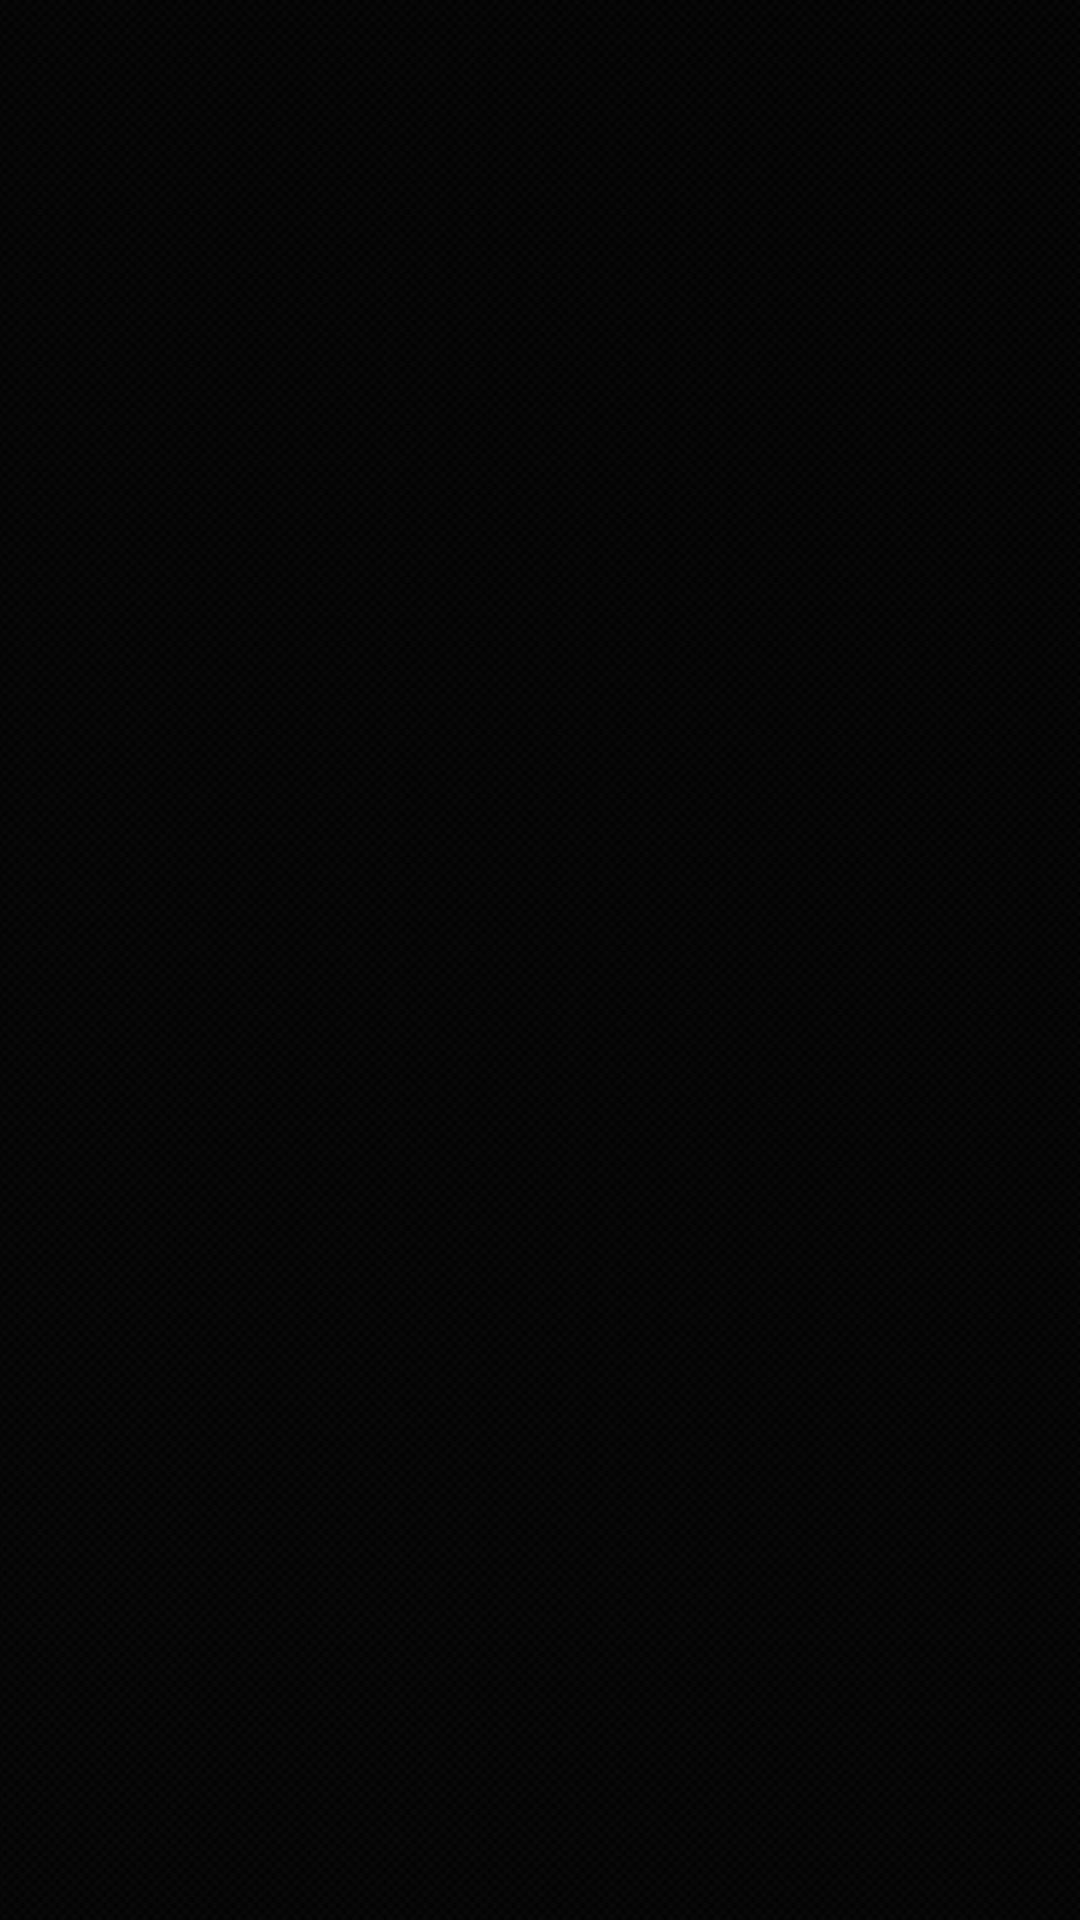 Ultra HD Incredible Black Wallpaper For Your Mobile Phone ...